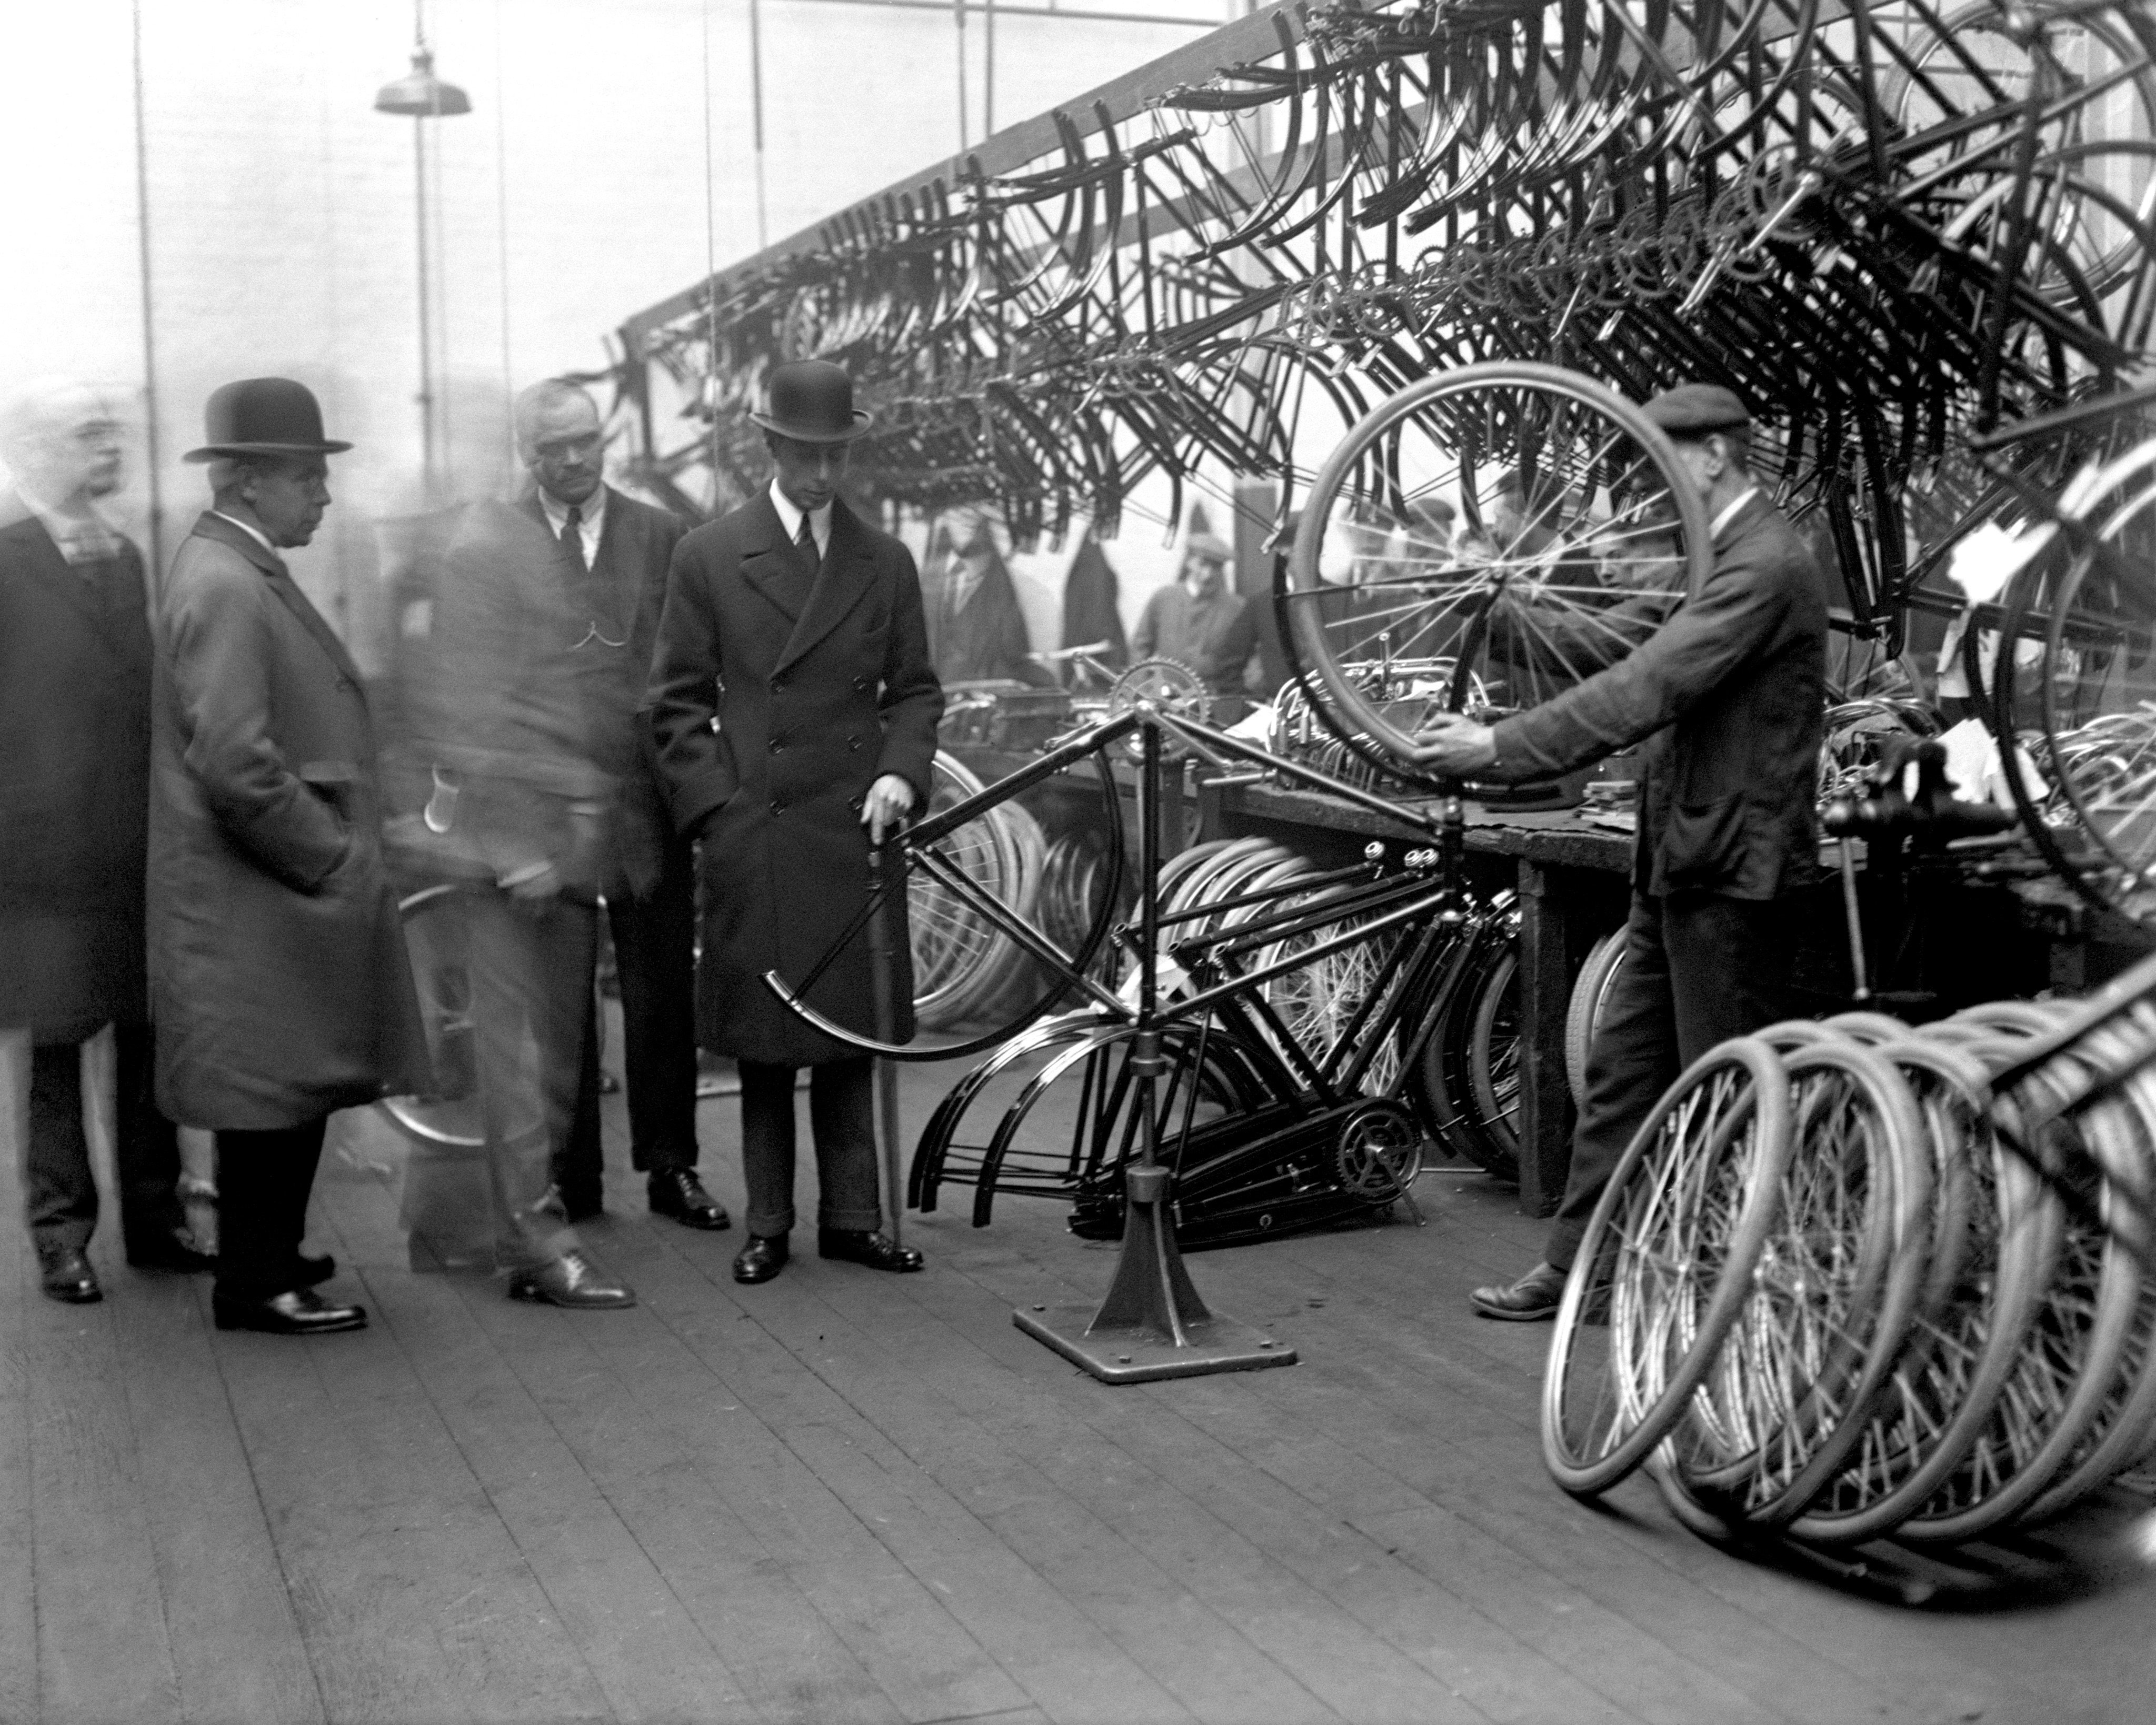 The Duke of York (later to become George VI) watching the assembling of bicycles at the Raleigh factory in Nottingham. From 1929.